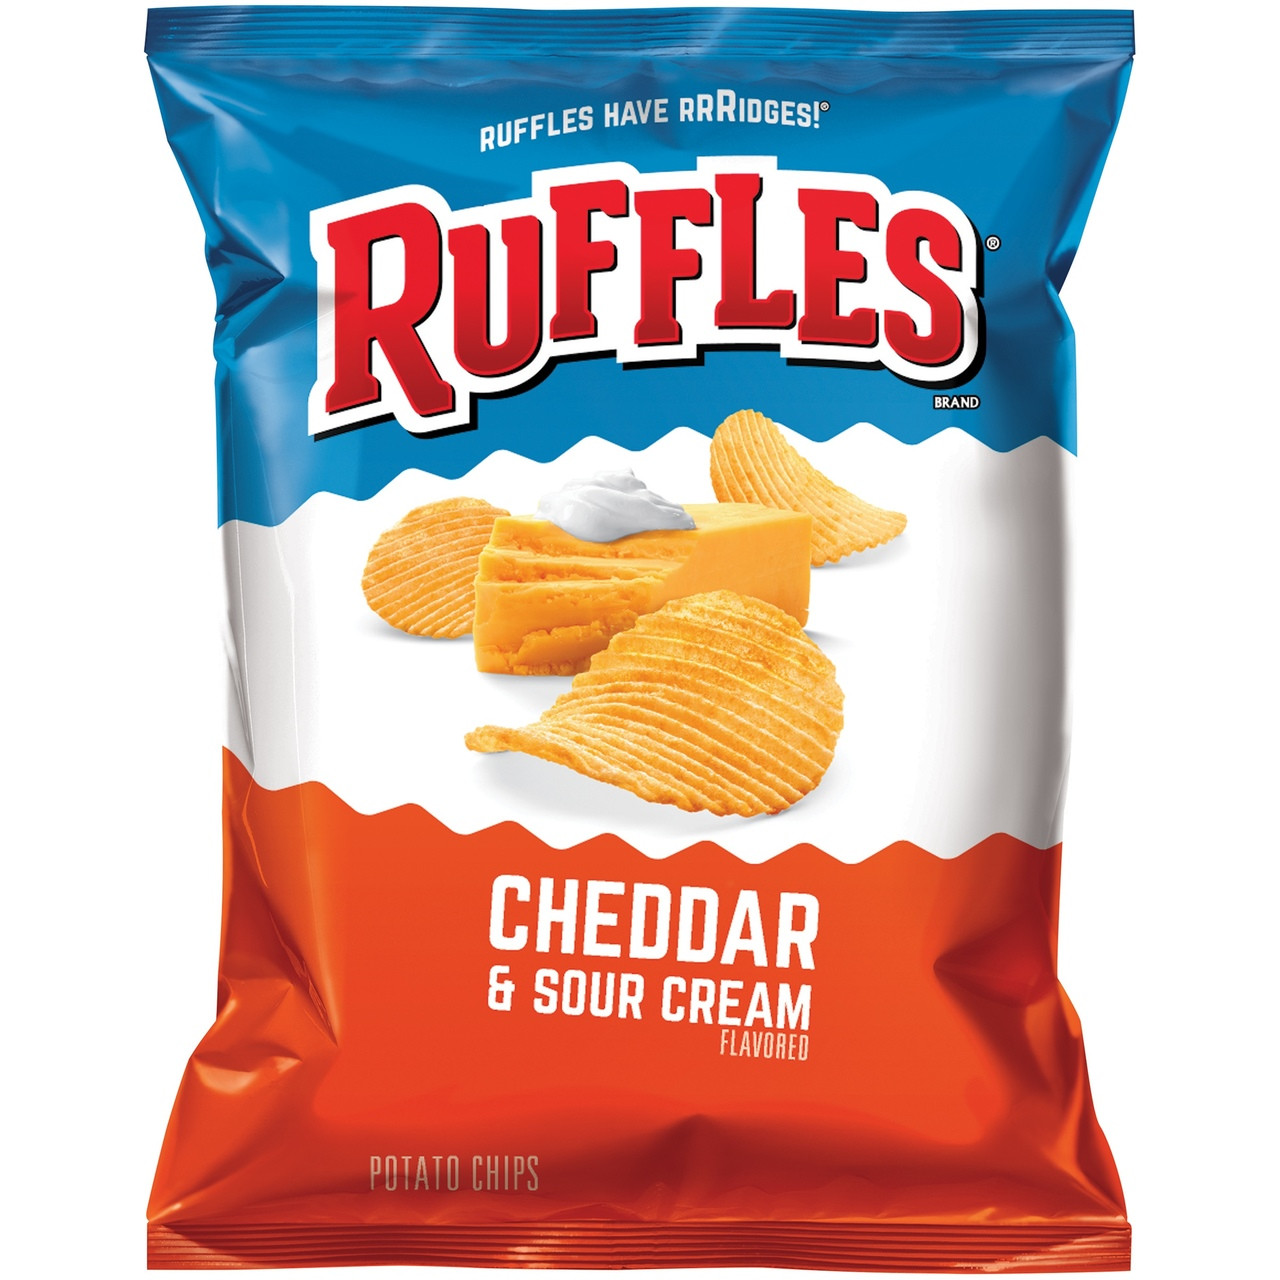 are ruffles sour cream and cheddar gluten free